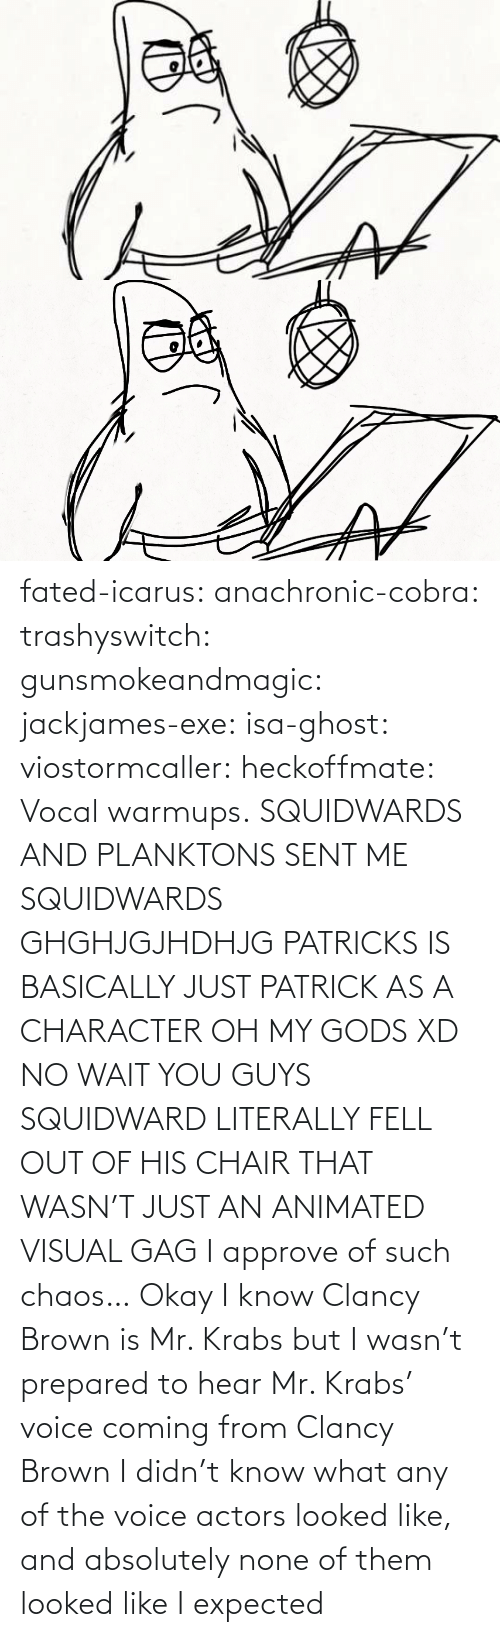 Voice: fated-icarus:  anachronic-cobra: trashyswitch:  gunsmokeandmagic:  jackjames-exe:  isa-ghost:   viostormcaller:  heckoffmate: Vocal warmups. SQUIDWARDS AND PLANKTONS SENT ME  SQUIDWARDS GHGHJGJHDHJG   PATRICKS IS BASICALLY JUST PATRICK AS A CHARACTER OH MY GODS XD   NO WAIT YOU GUYS SQUIDWARD LITERALLY FELL OUT OF HIS CHAIR THAT WASN'T JUST AN ANIMATED VISUAL GAG    I approve of such chaos…    Okay I know Clancy Brown is Mr. Krabs but I wasn't prepared to hear Mr. Krabs' voice coming from Clancy Brown    I didn't know what any of the voice actors looked like, and absolutely none of them looked like I expected